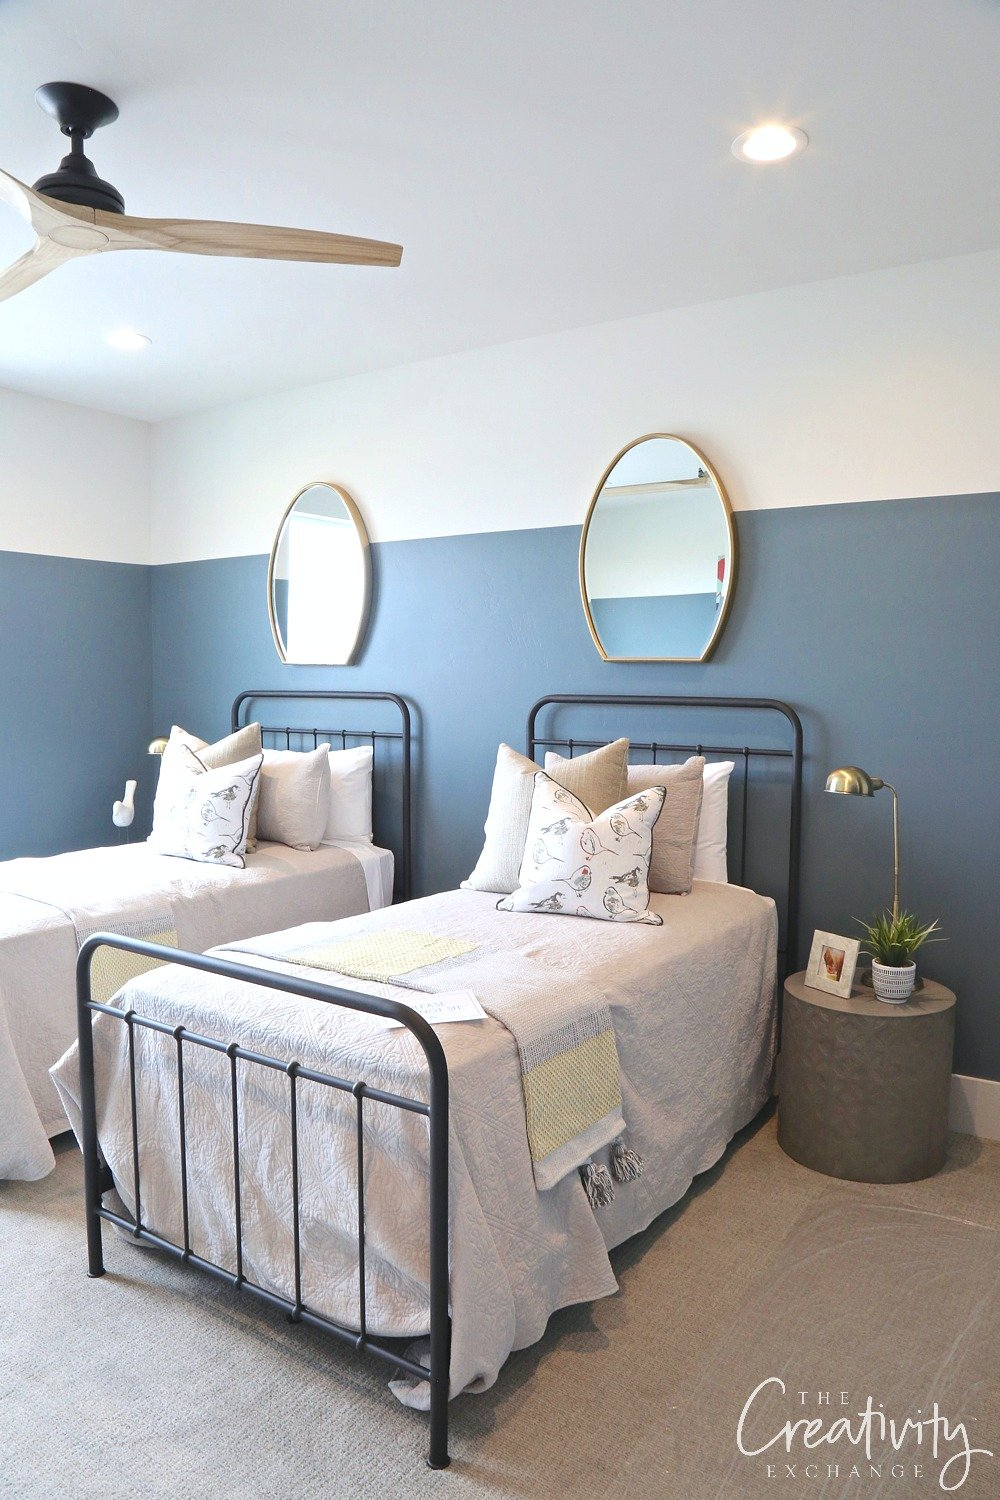 Wall color is Sherwin Williams Slate Tile